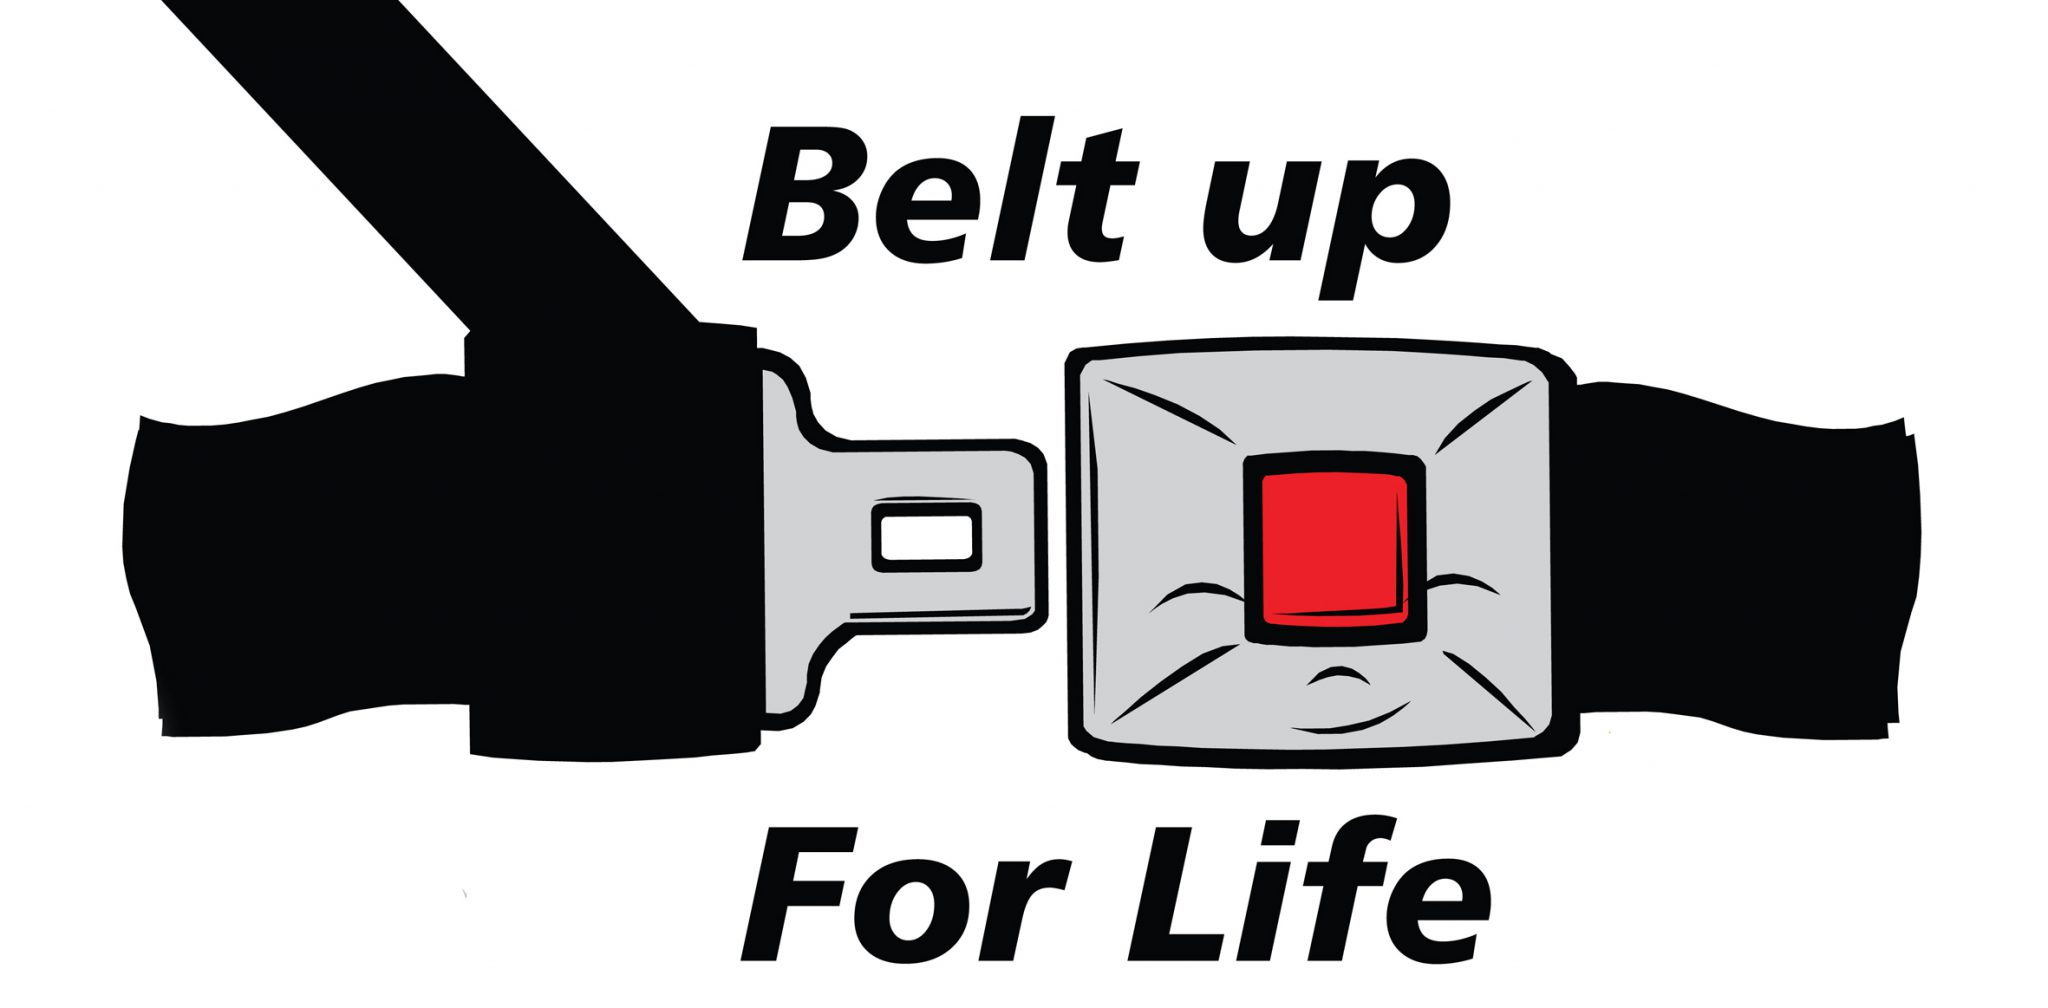 Used Seatbelts